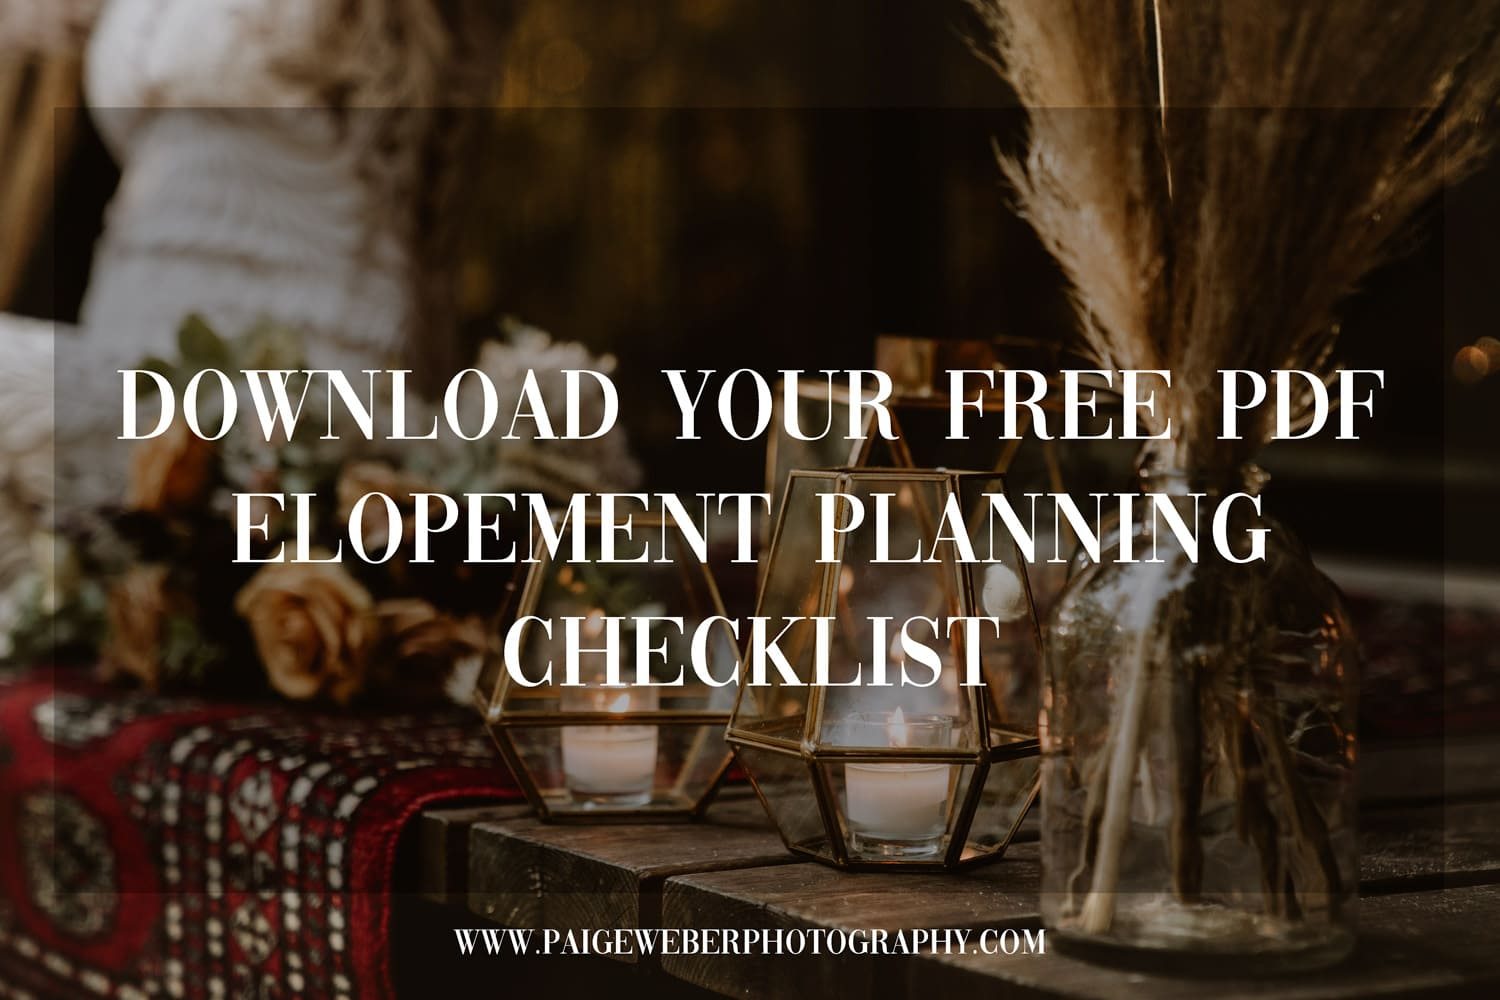 download your free pdf elopement checklist to help plan your elopement